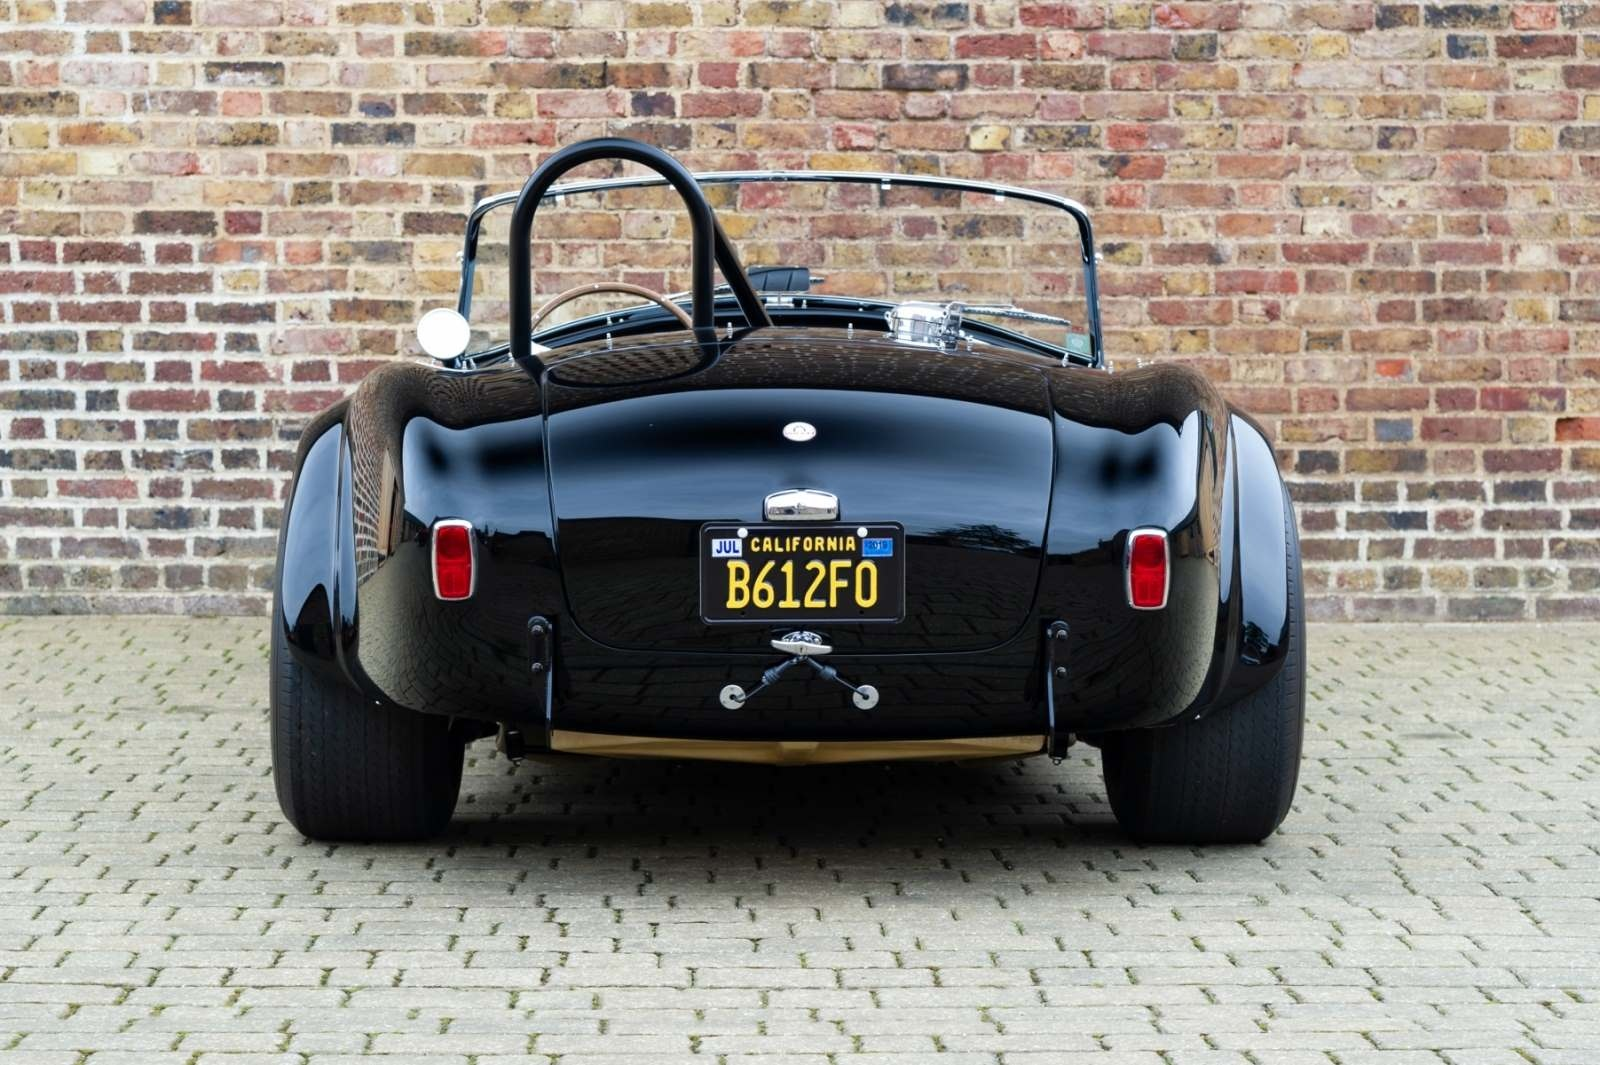 Shelby Cobra 289 for sale - Vehicle Sales - DK Engineering